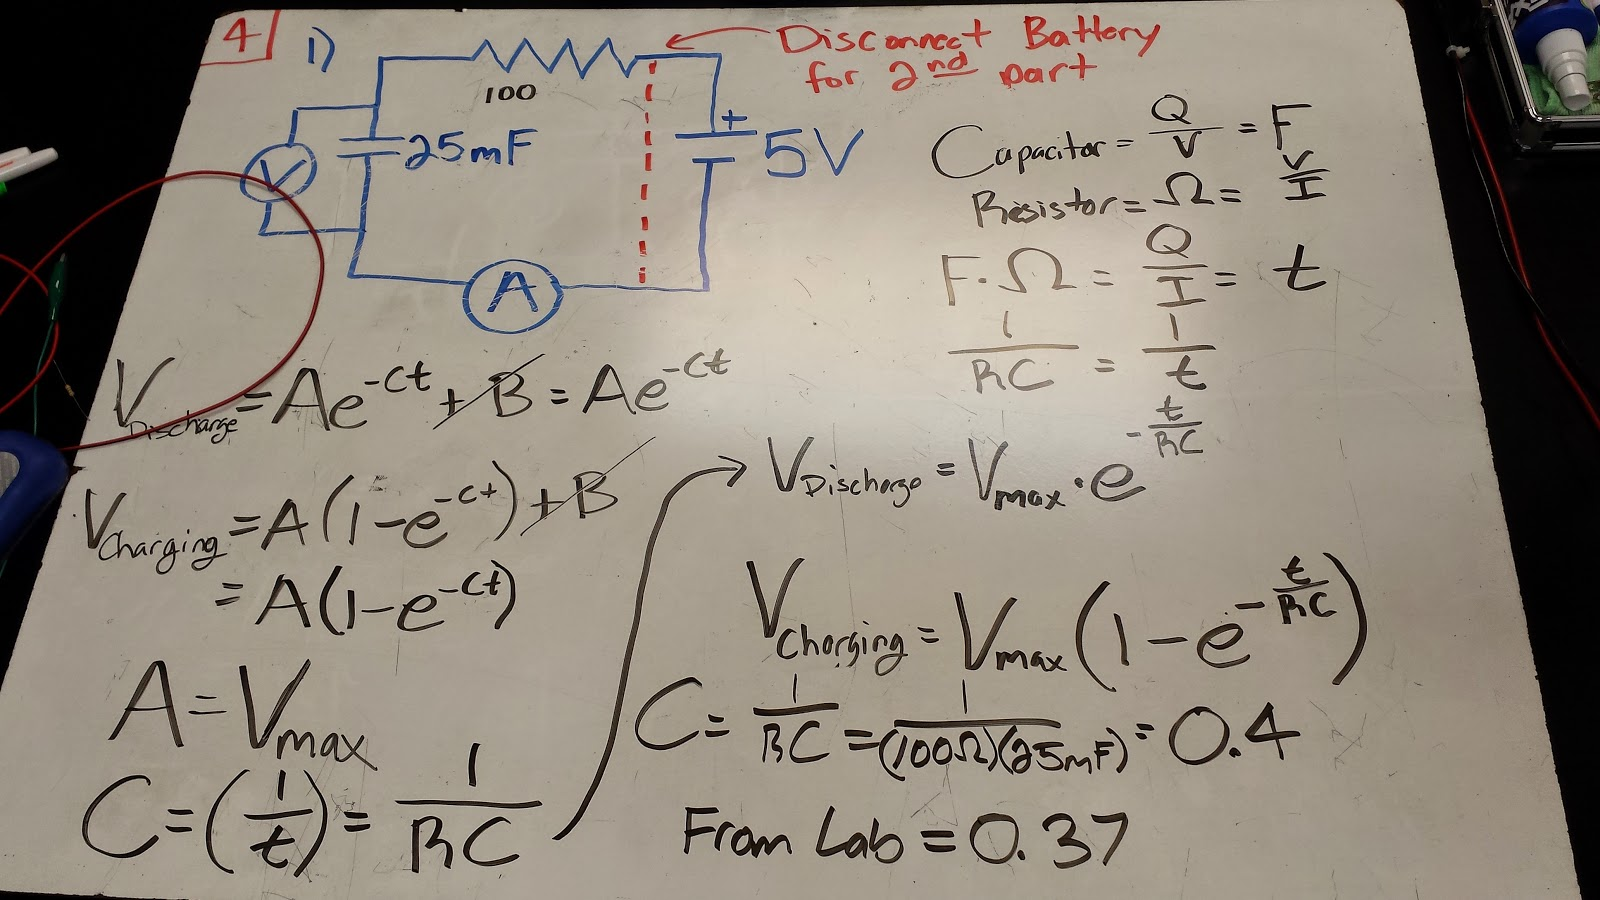 Week 9 October 23 2014 Day 18 Physics 4b Cfawcett Cap Discharge Circuit O27 Switch A Schematic Of The Experiment Charging And Discharging Capacitor Can Be Used To Calculate Result Verify Our Value That We Got Using